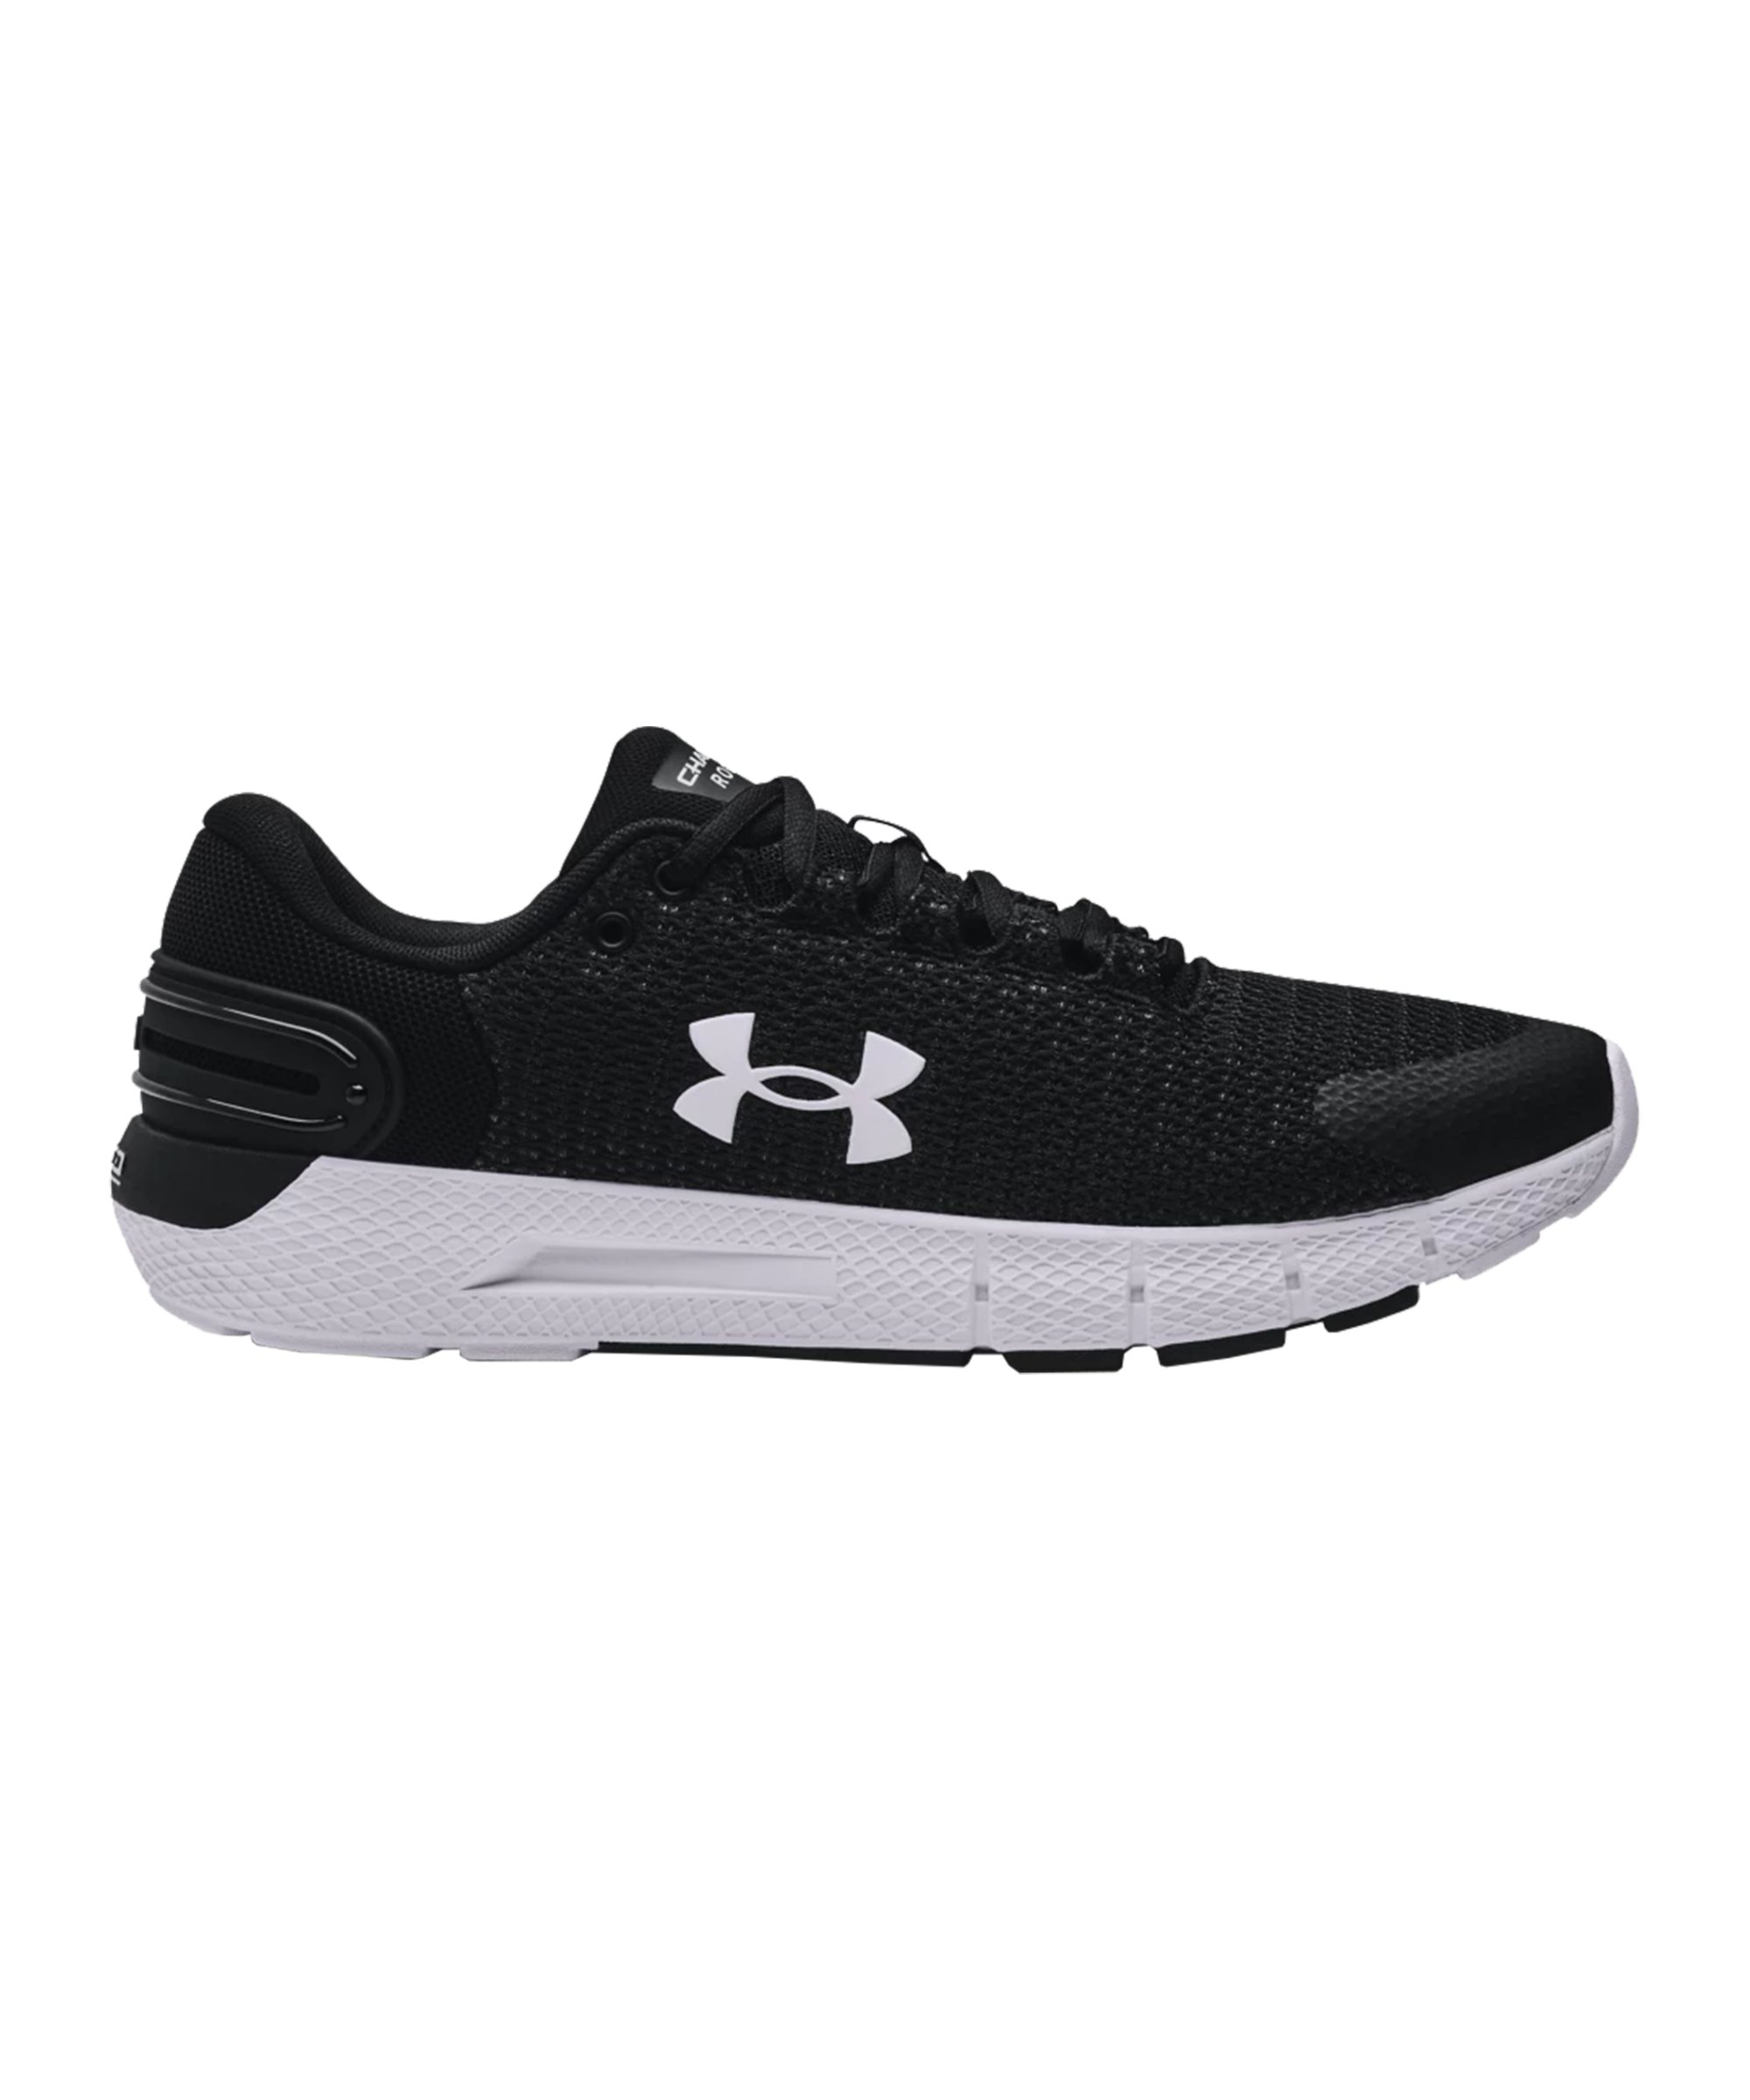 Under Armour Charged Rogue 2.5 Running F001 - schwarz